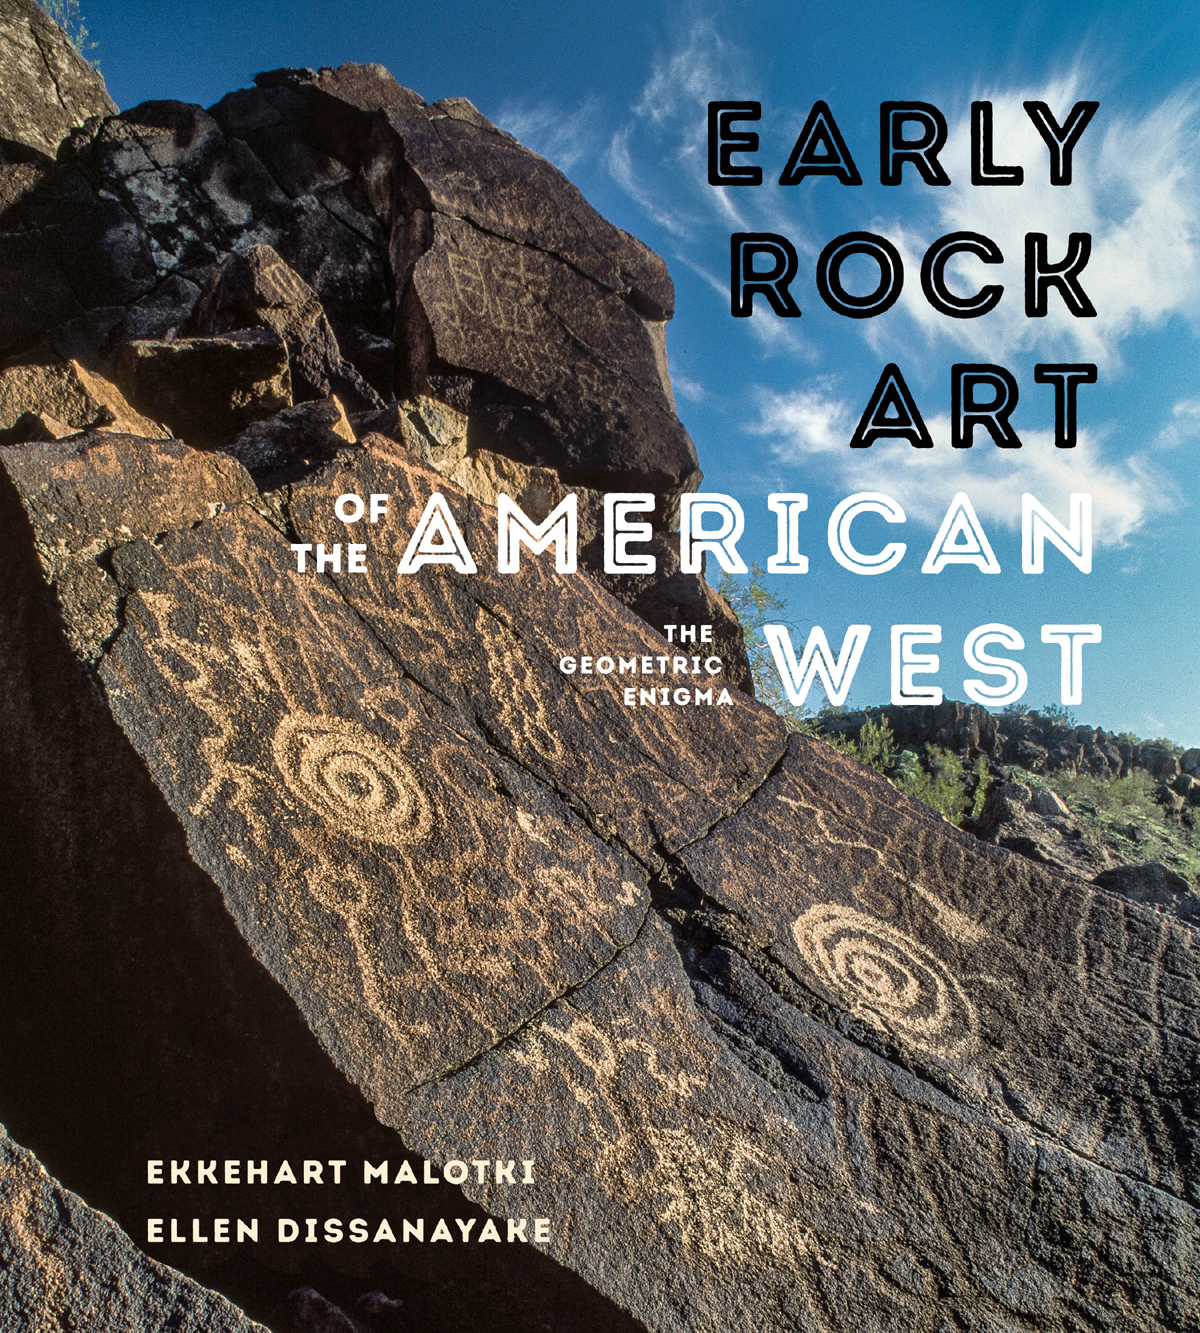 Early Rock Art of the American West: The Geometric Enigma. Rock Art EKKEHART MALOTKI AND ELLEN DISSANAYAKE